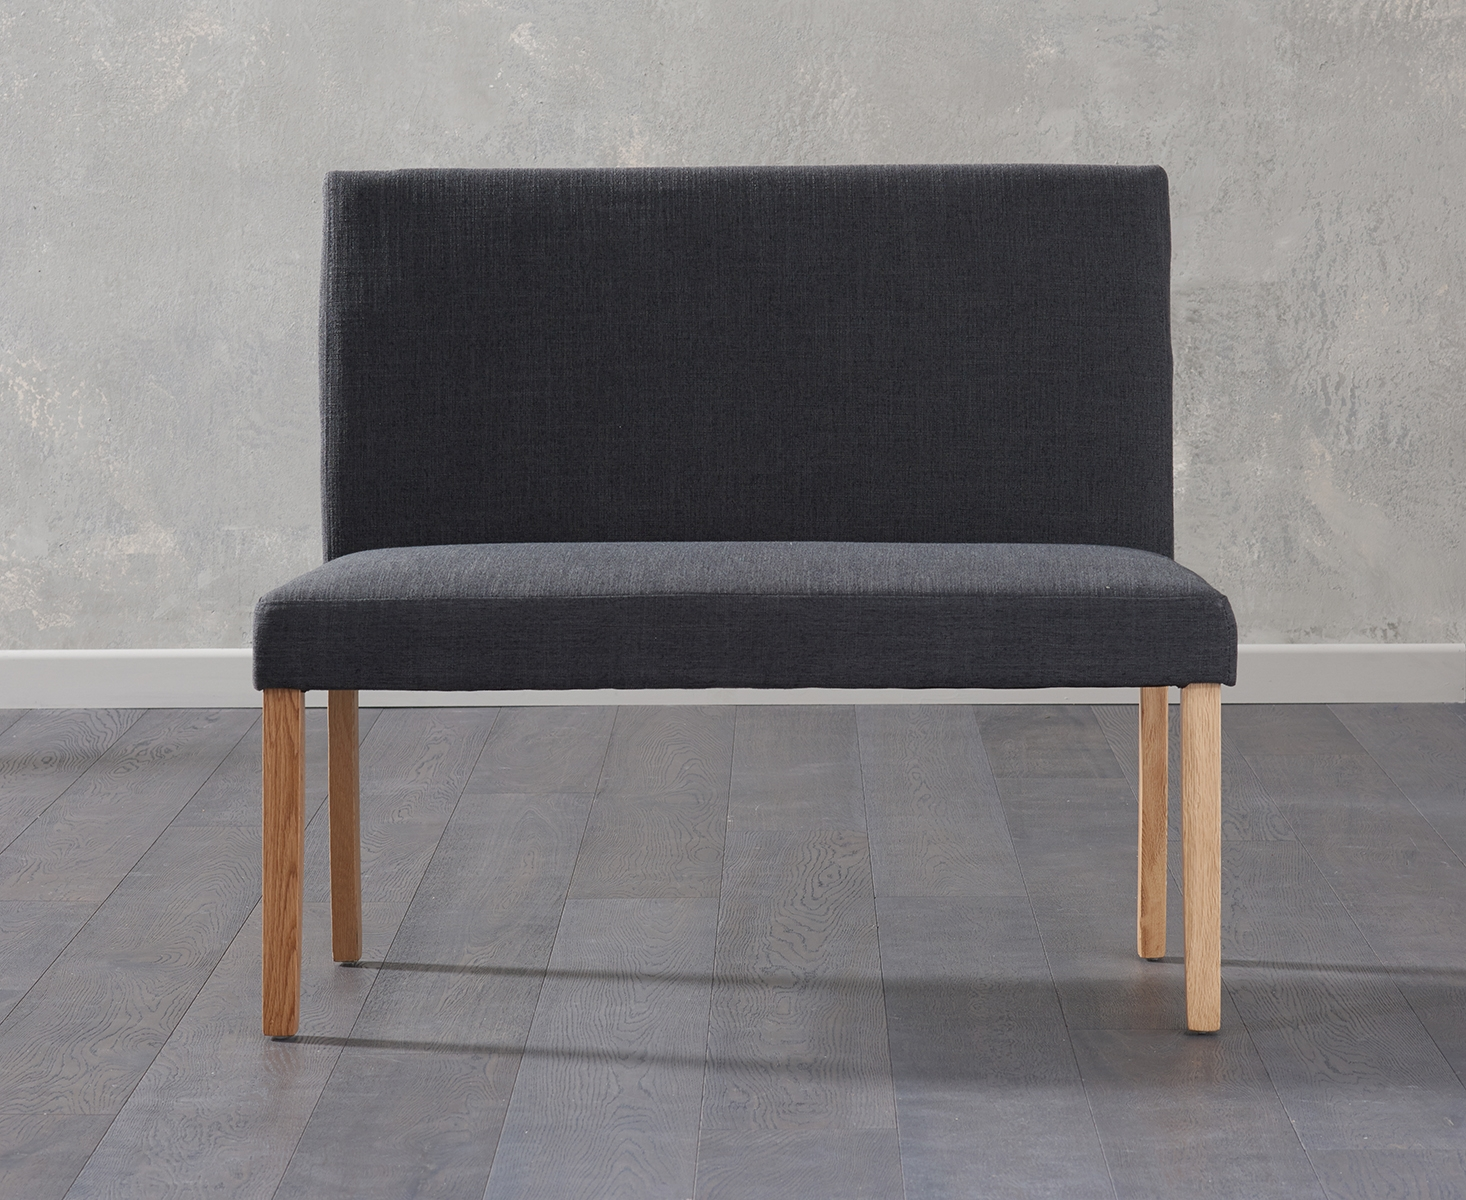 An image of Mia Small Black Bench With Back